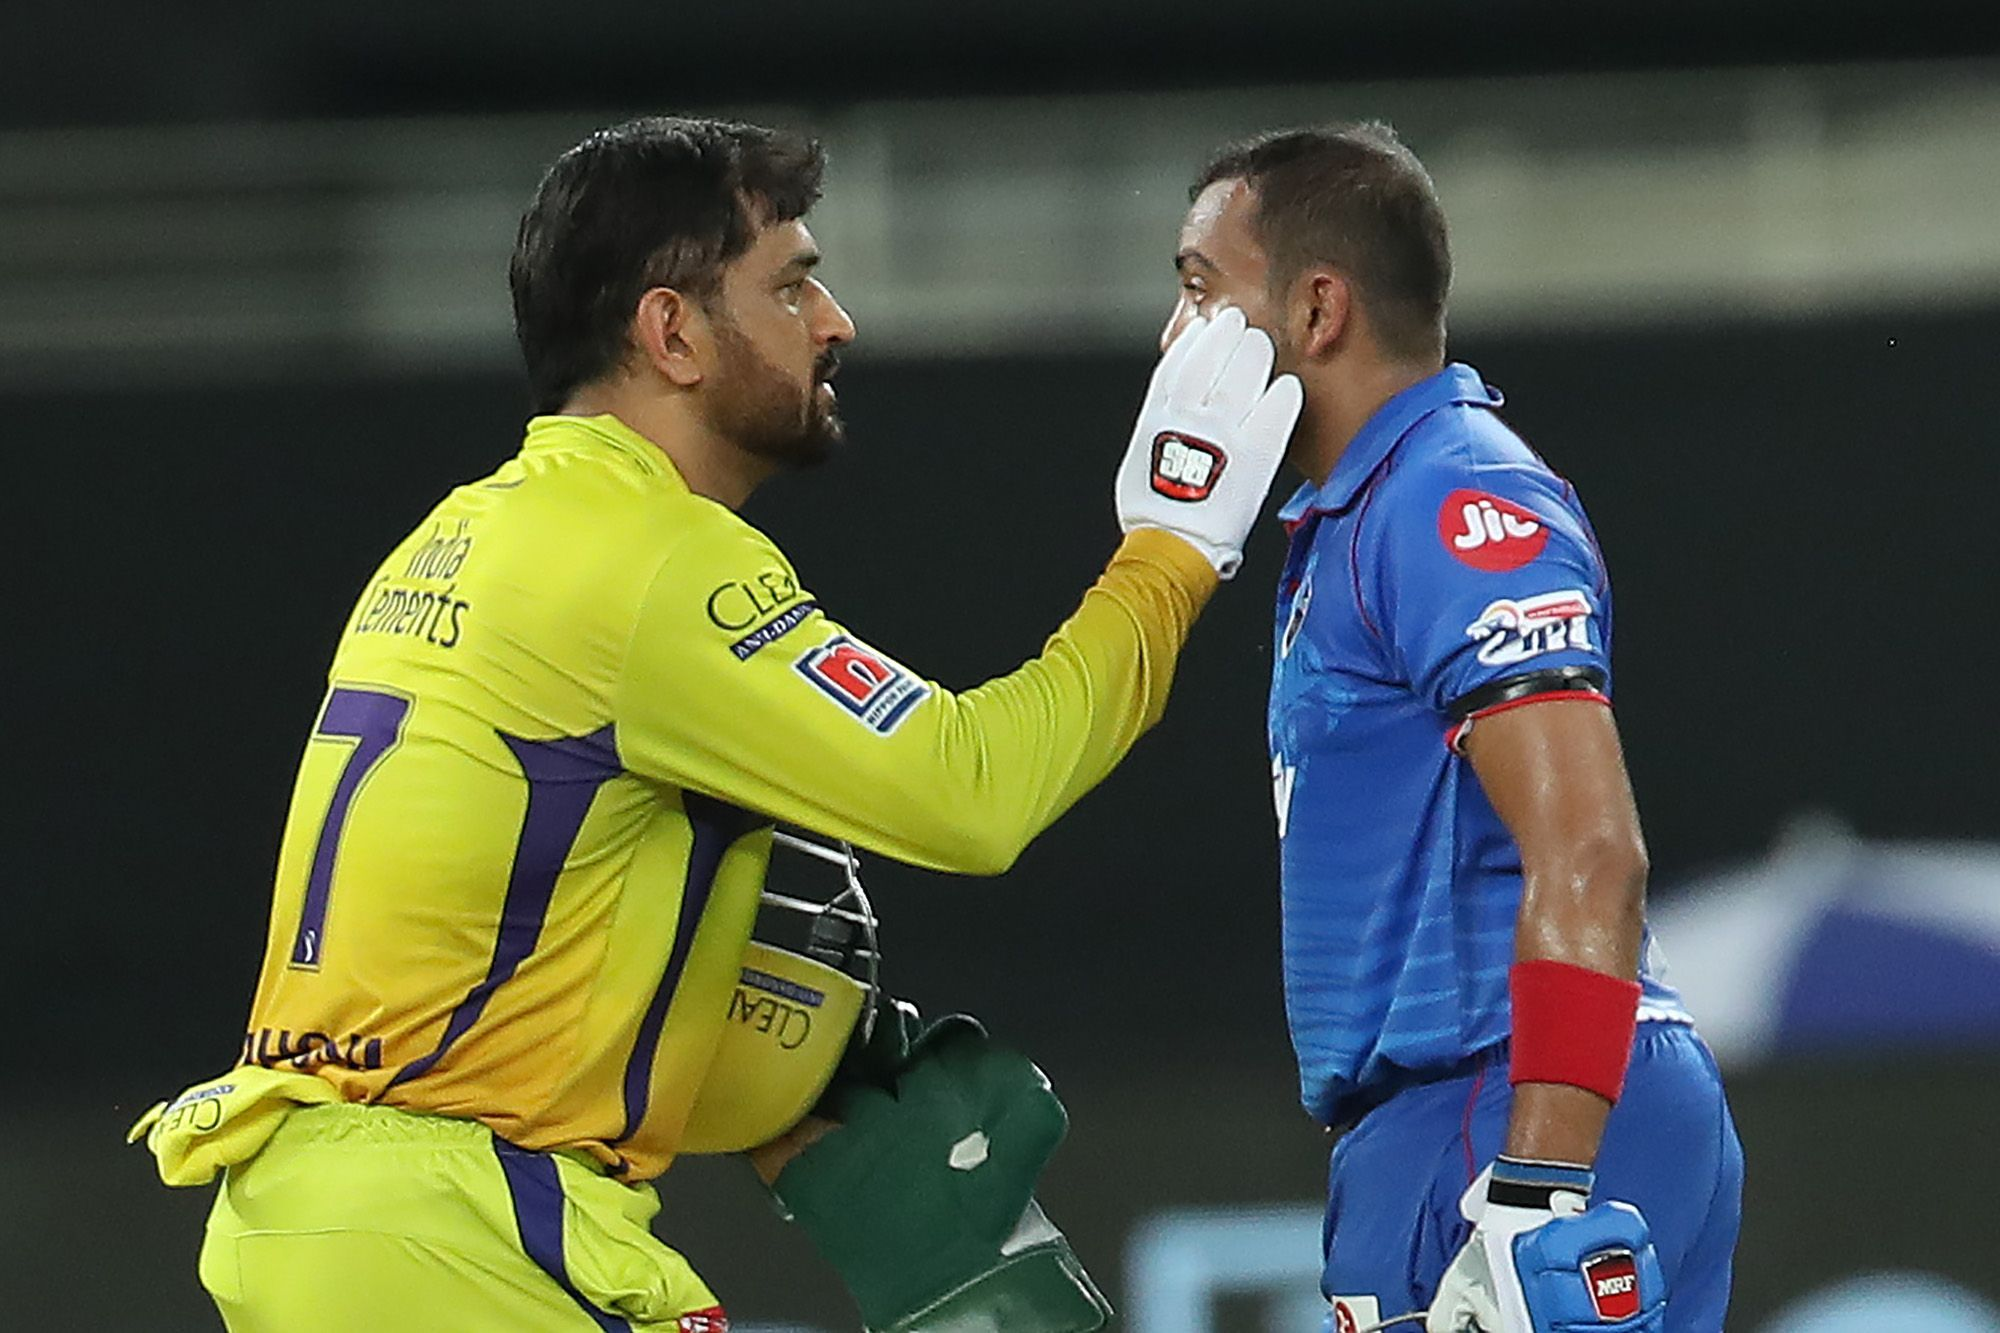 MS Dhoni and Prithvi Shaw have made our list | BCCI/IPL